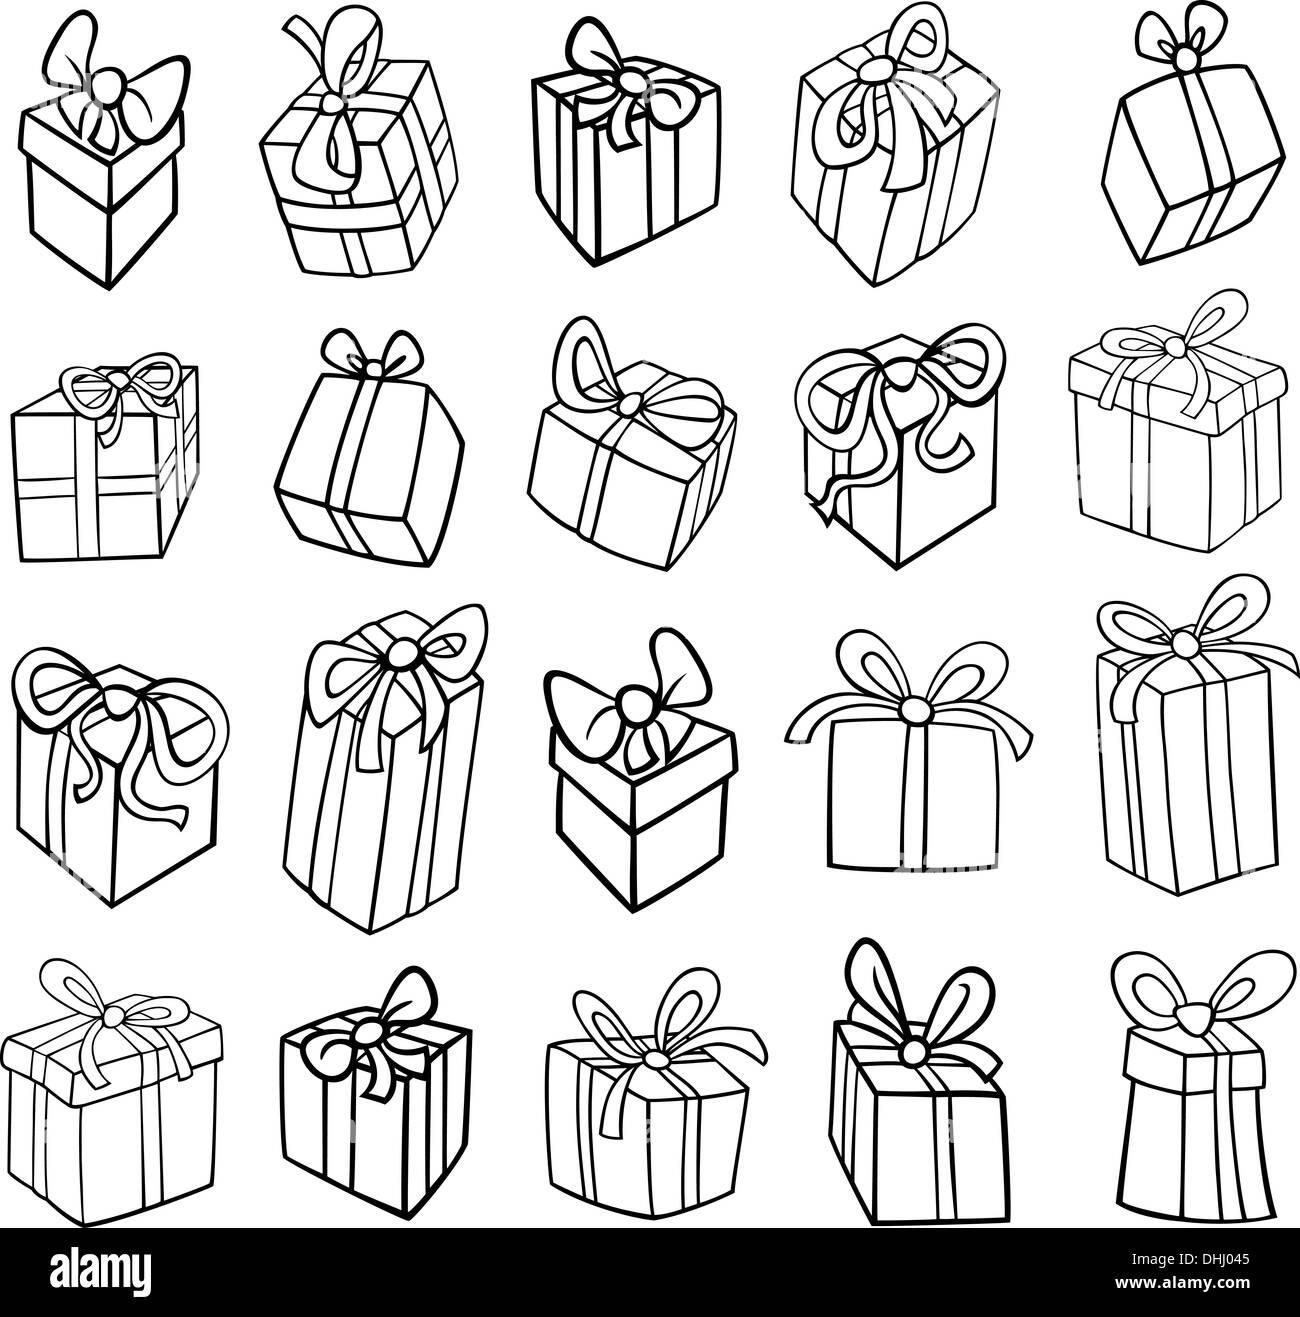 Black and White Cartoon Illustration of Christmas or Birthday Stock ...